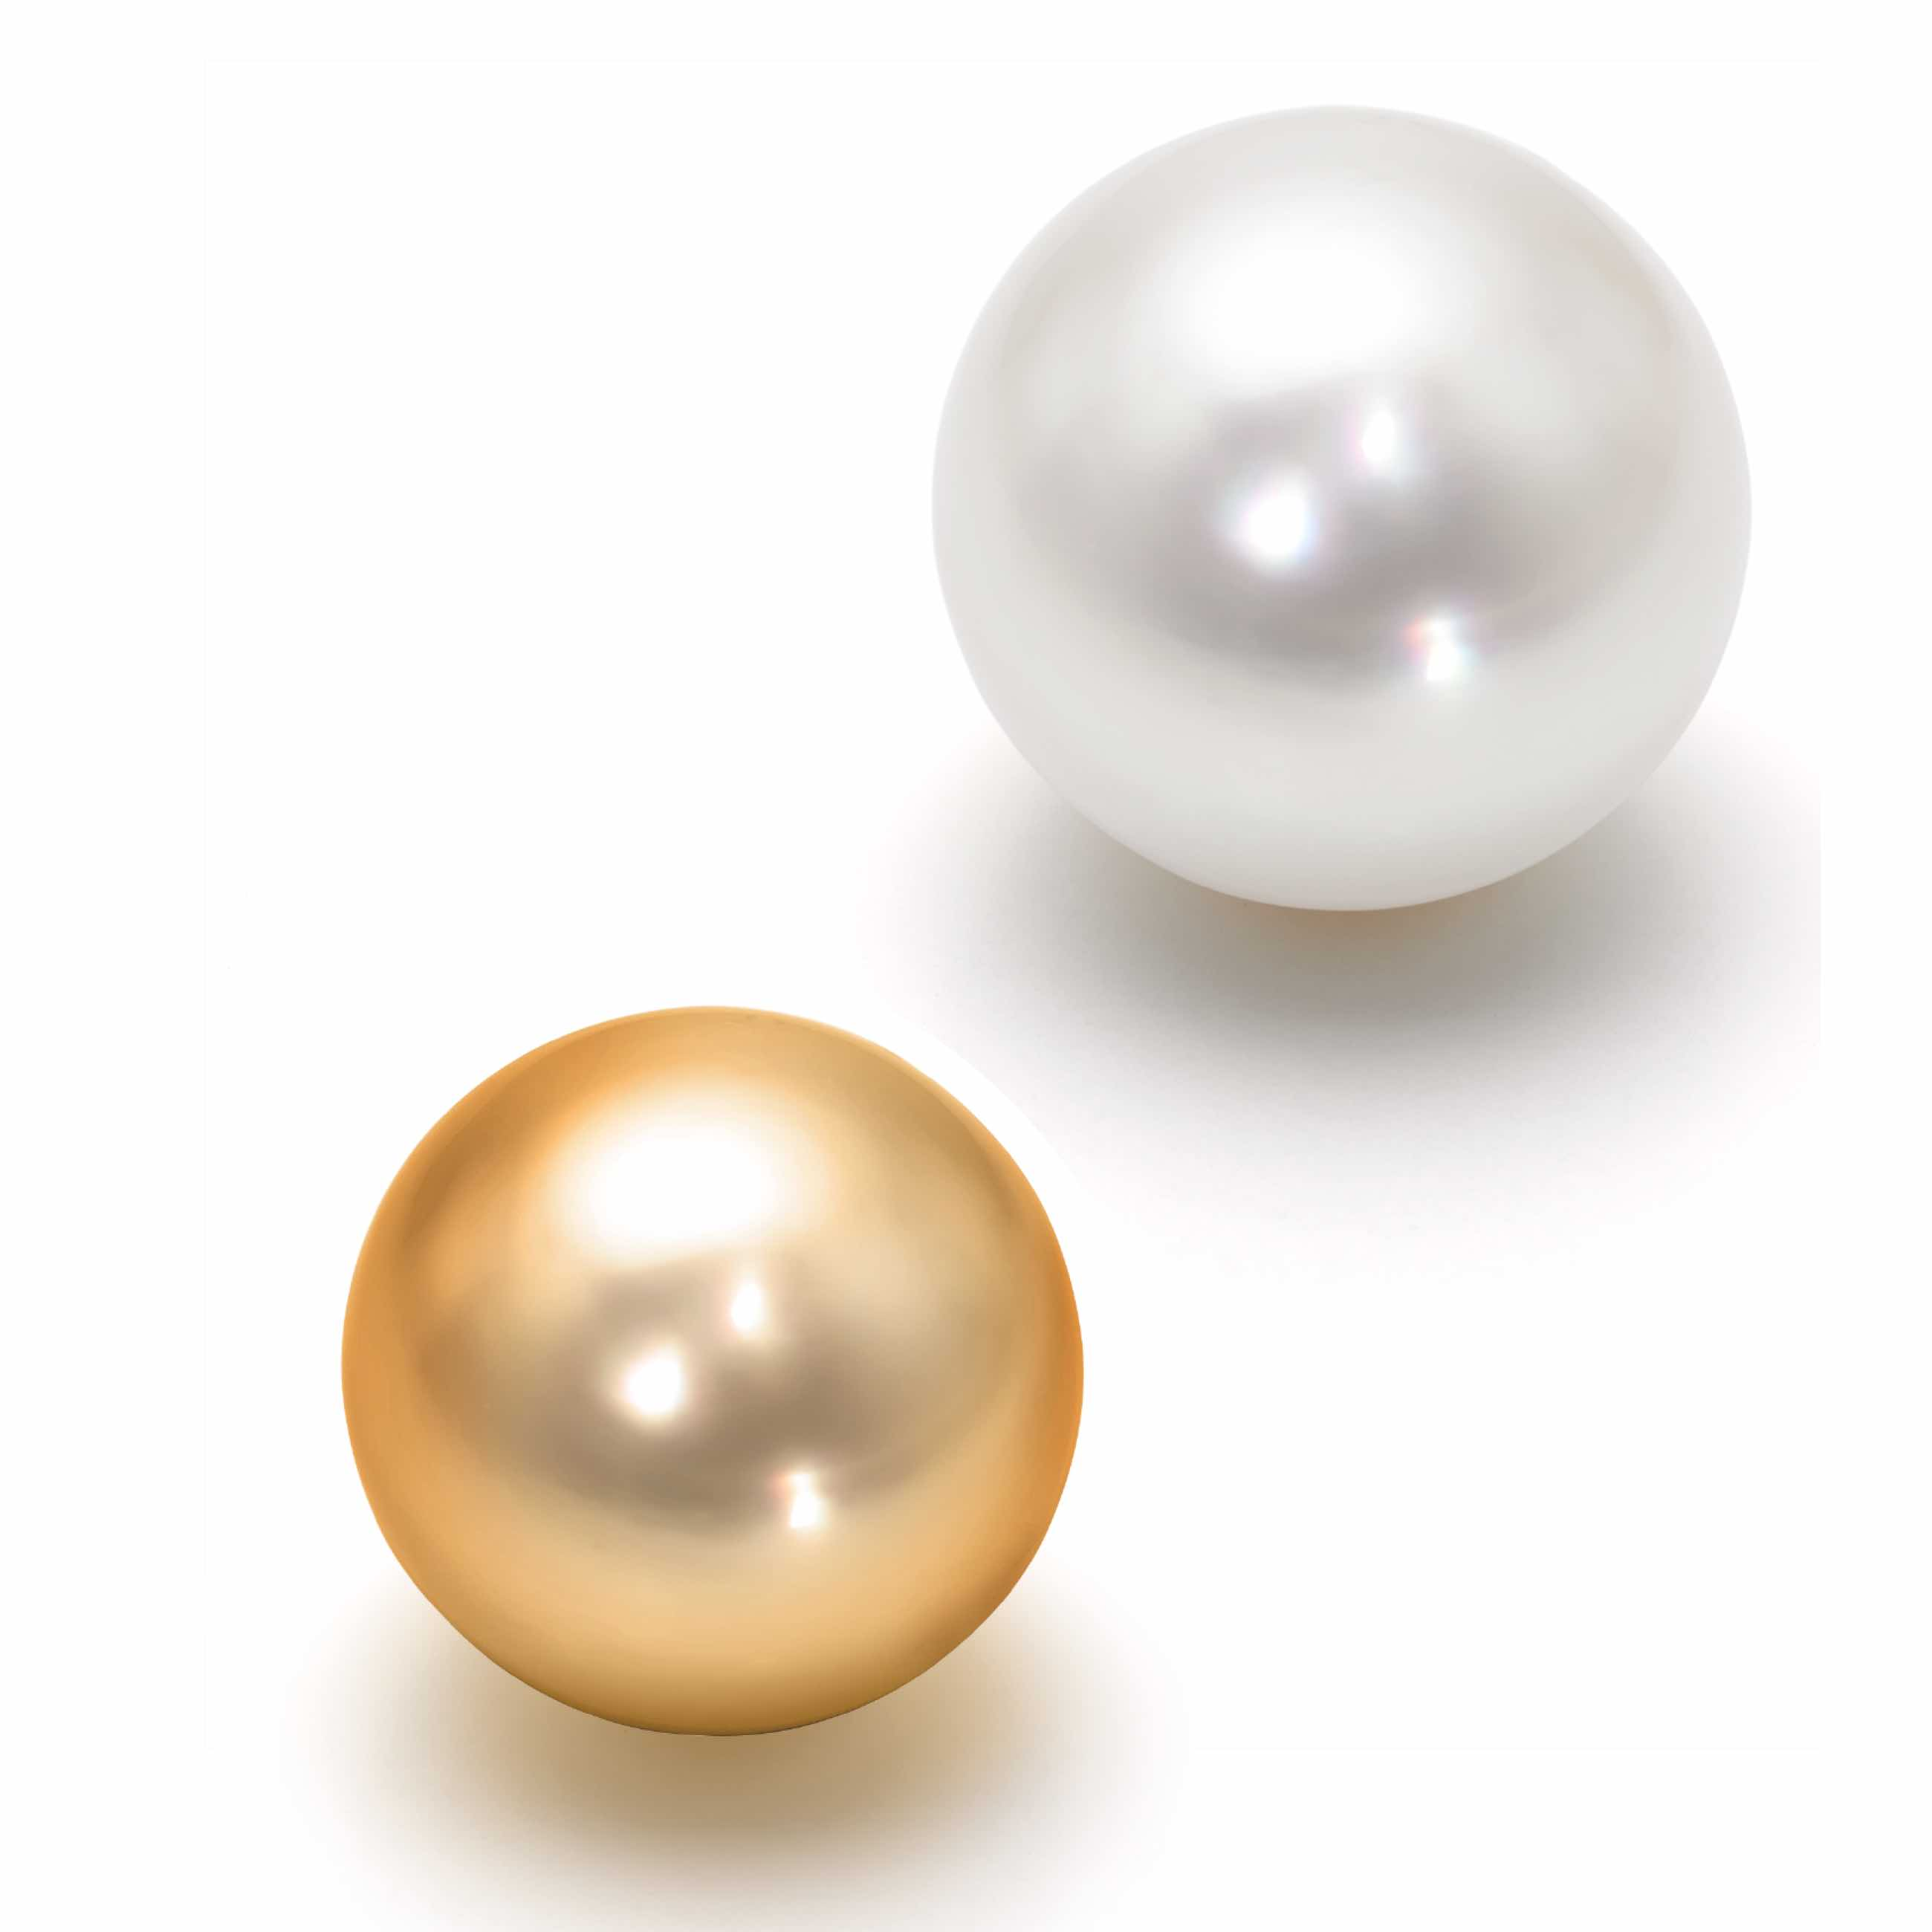 jewelry pearls amazon saltwater pearl com cultured white inches japanese sea aaa dp akoya gold necklace water quality